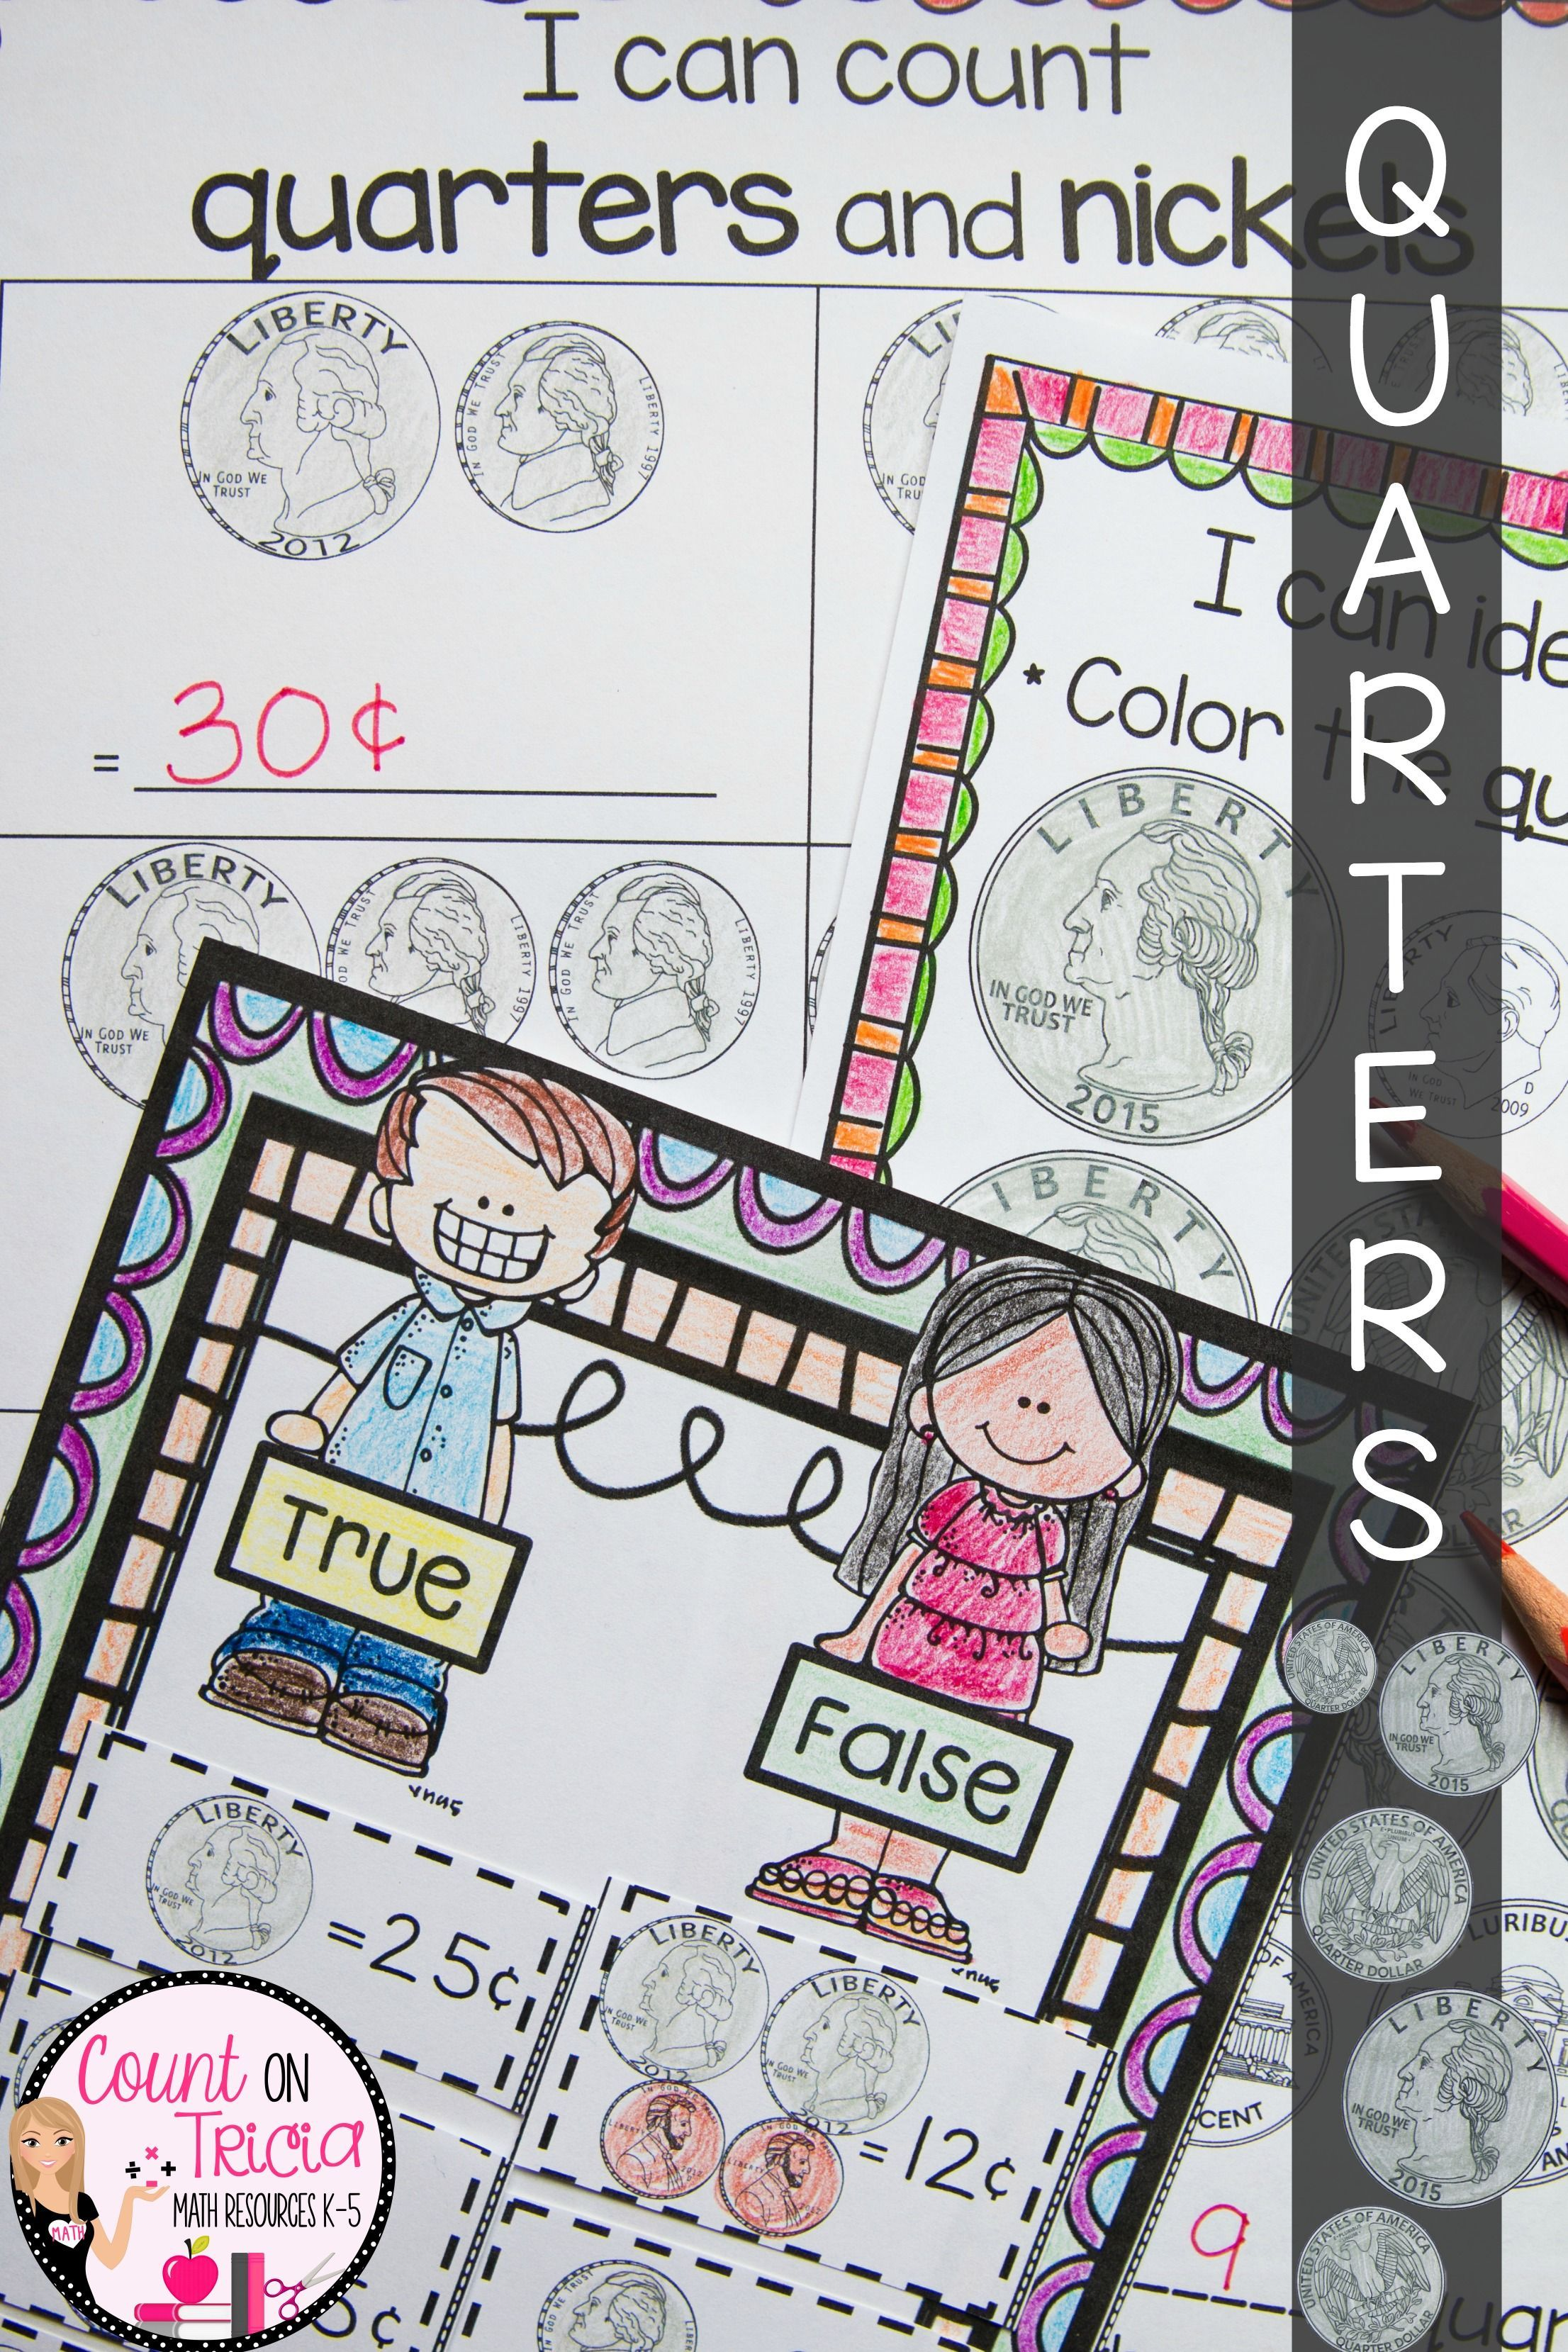 Counting Quarters Activities For Kids With These Engaging